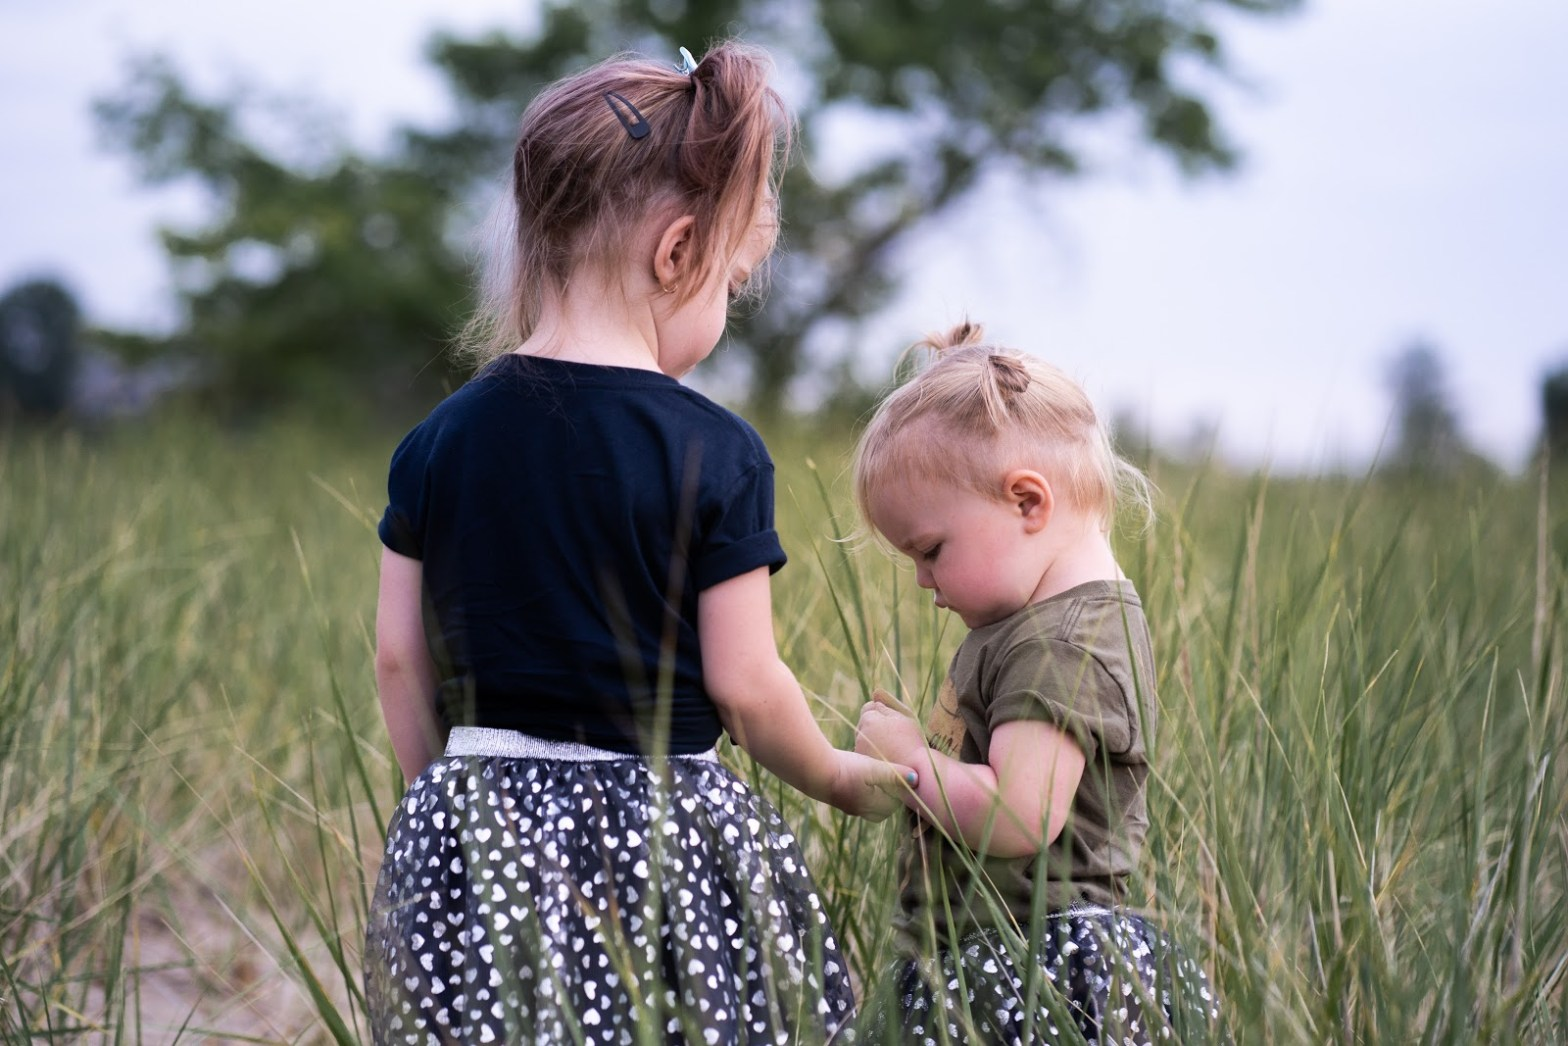 Young girls playing in the grass.